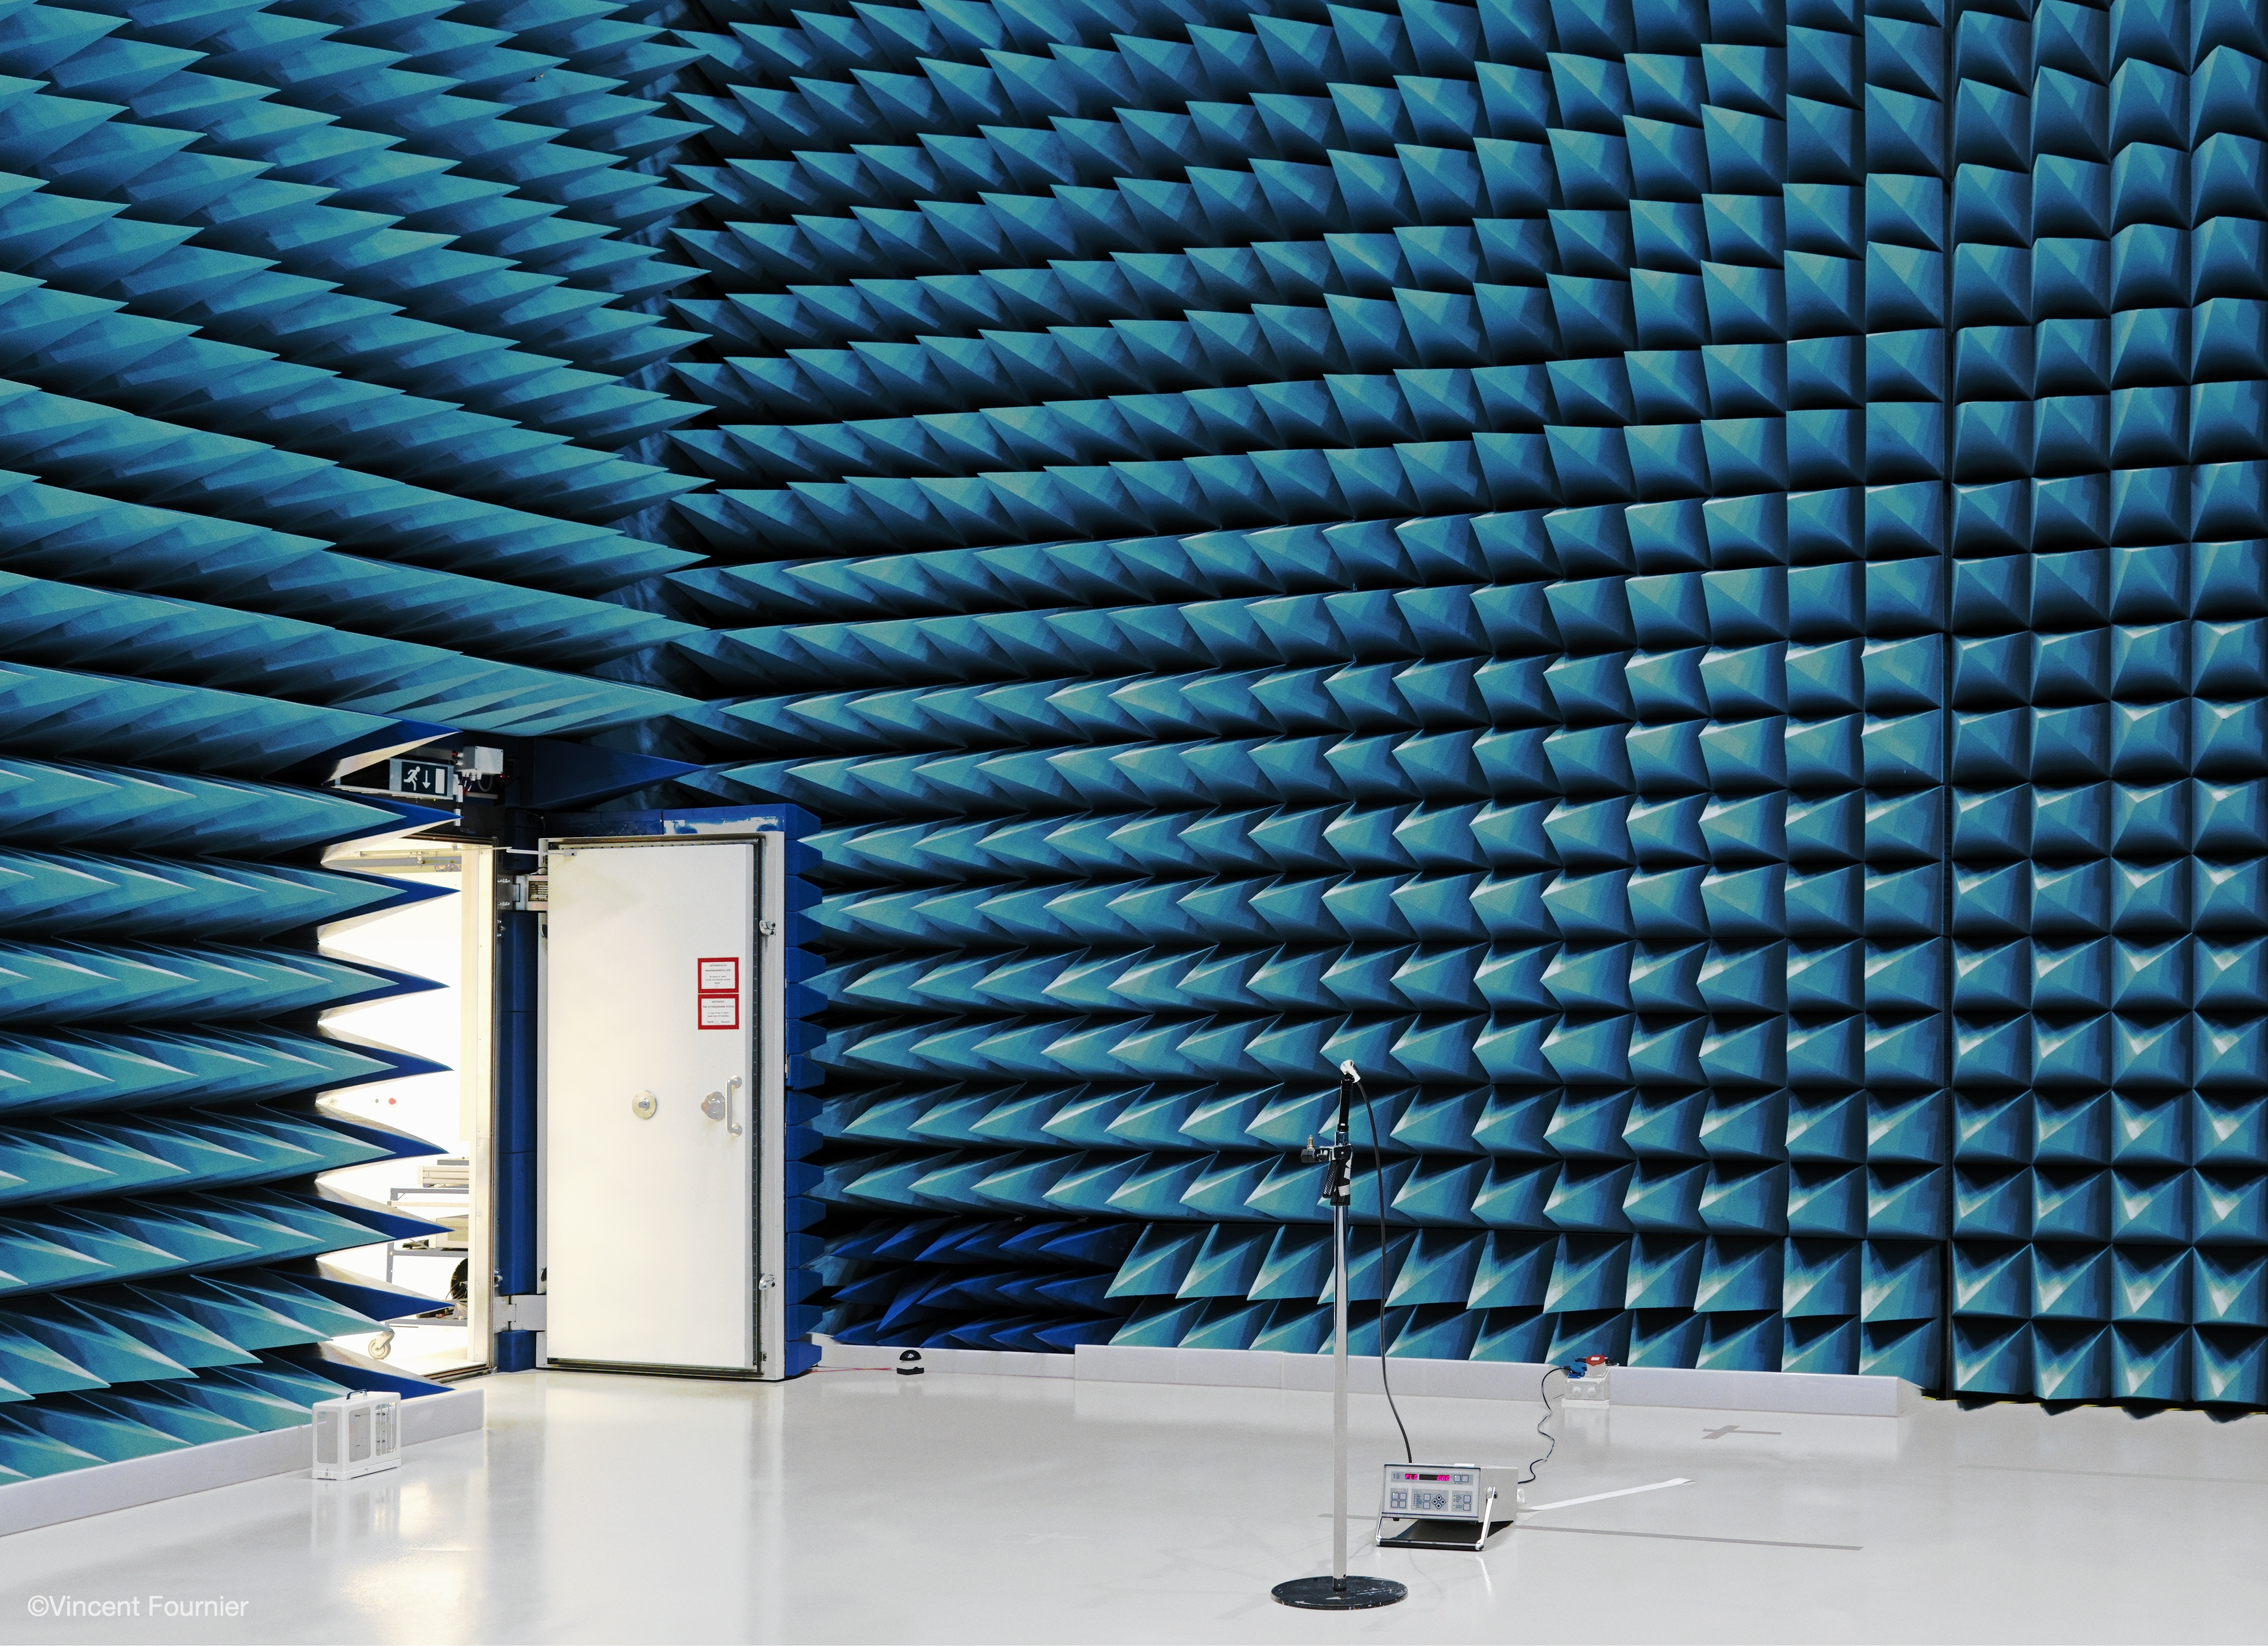 Vincent Fournier - anechoic chamber